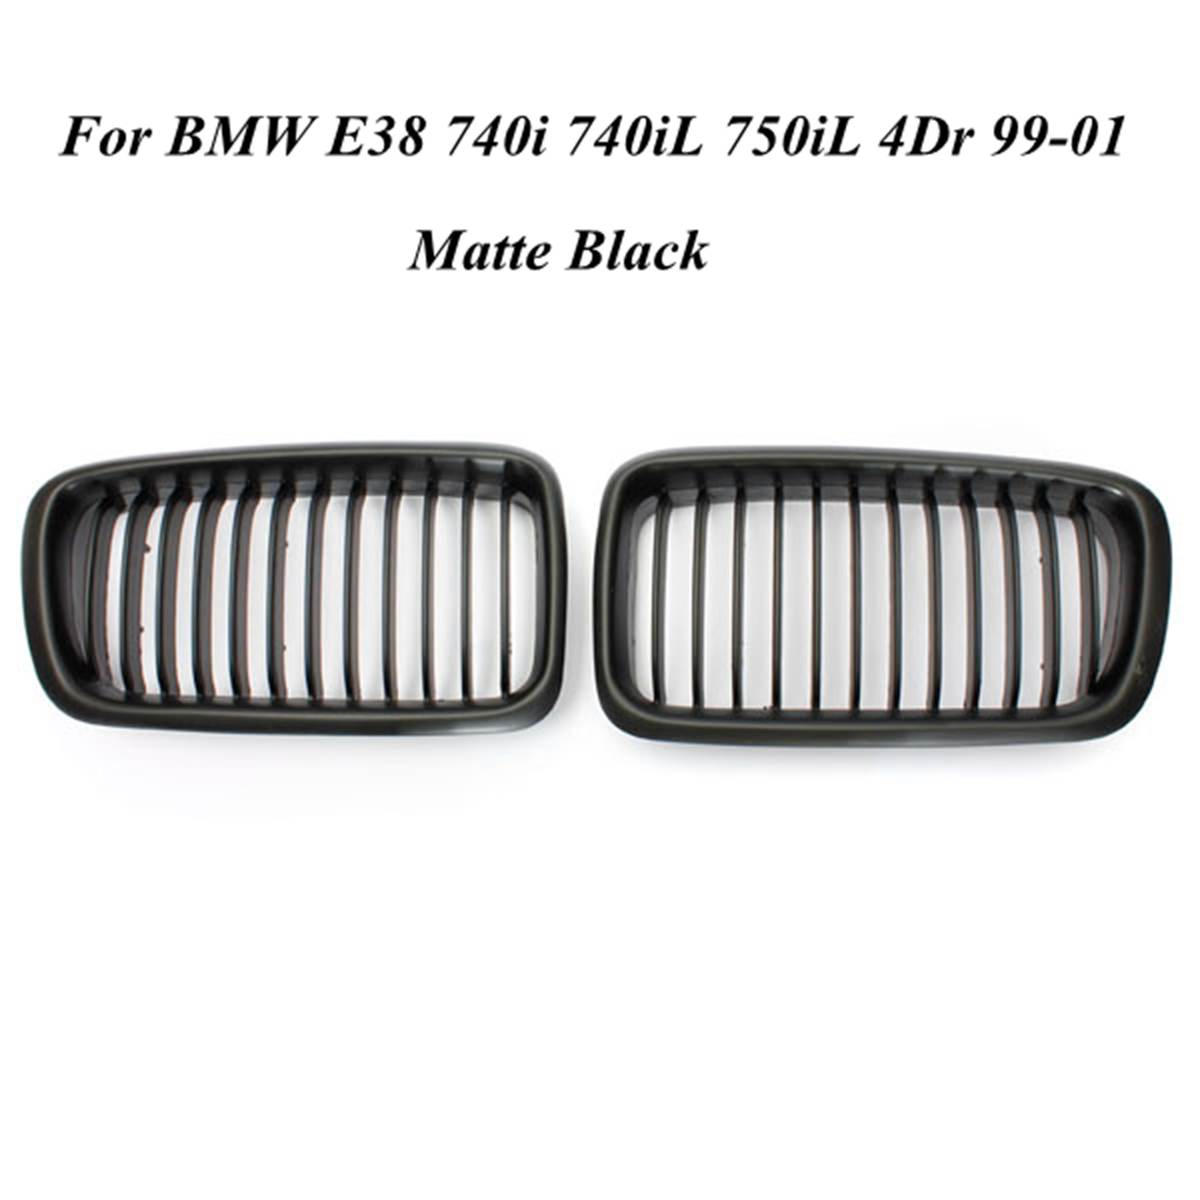 Pair Front Hood Grille Grill Matte Black For BMW E38 740i